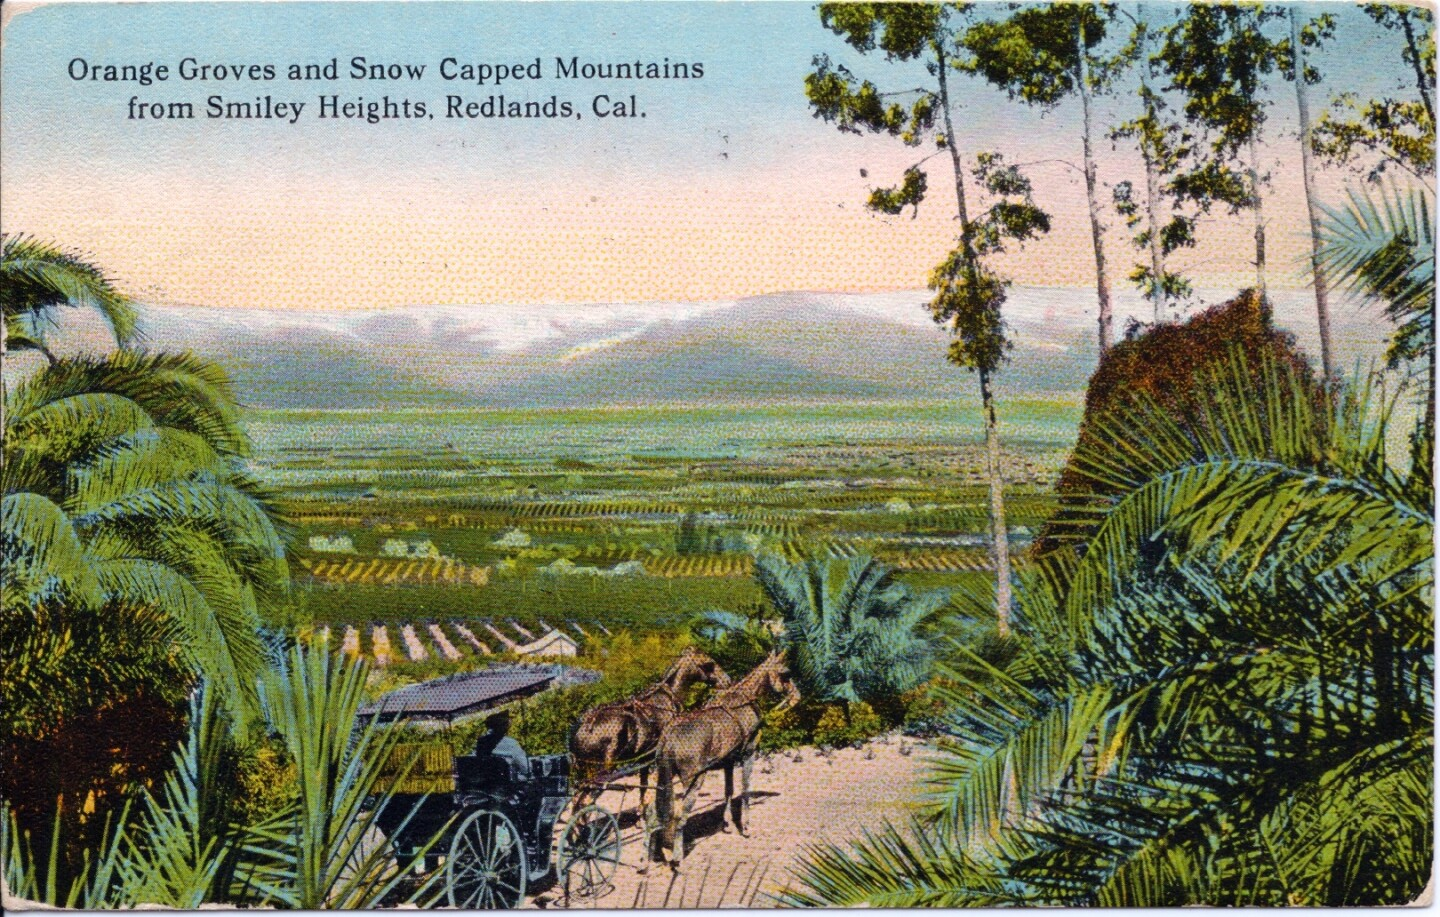 Orange Groves and Snow Capped Mountains from Smiley Heights, Redlands